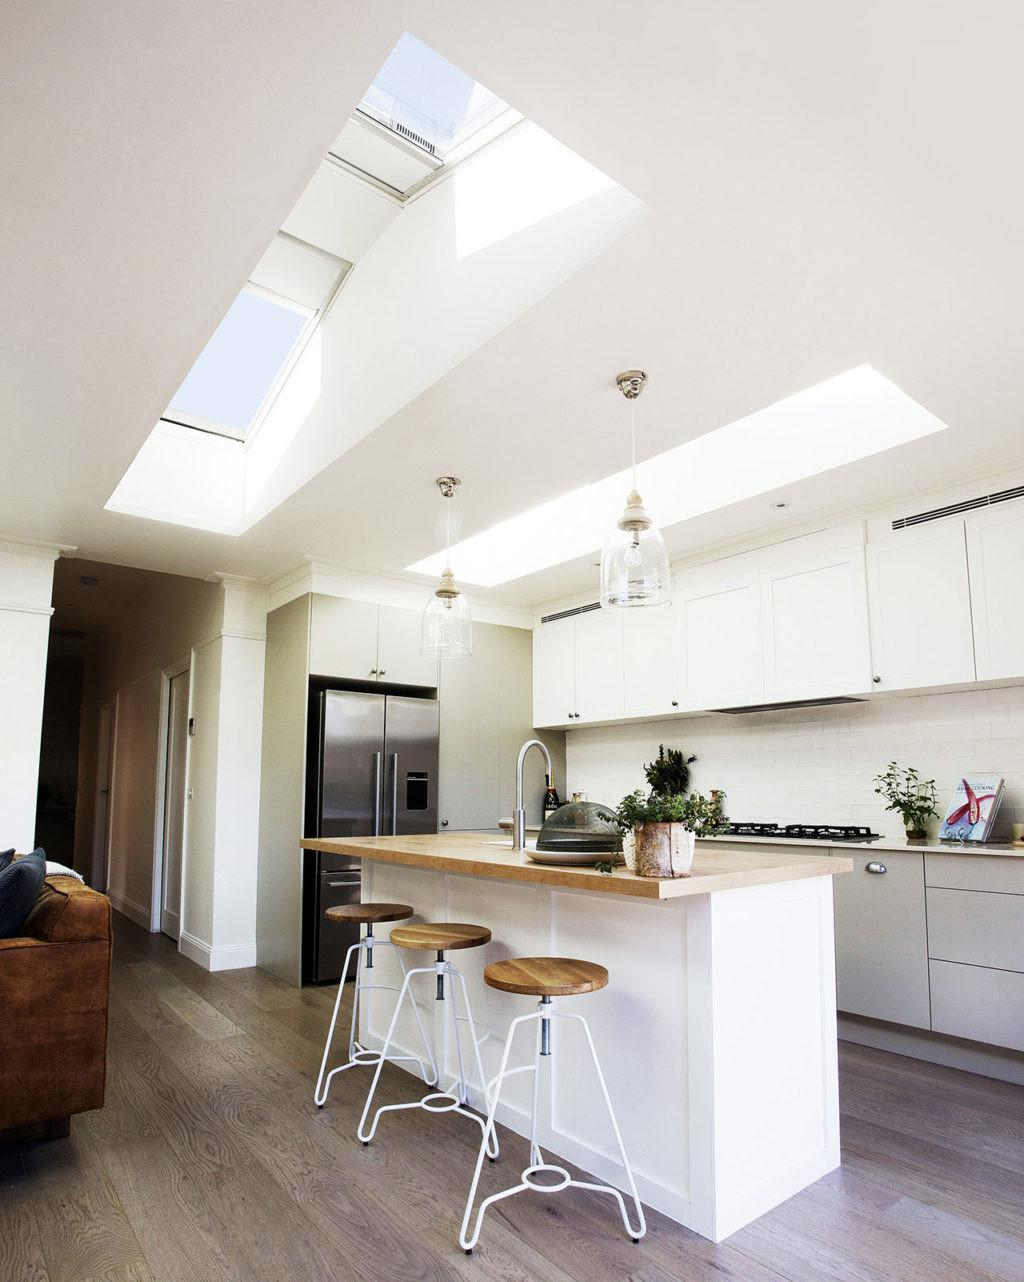 Remarkable Kitchen Skylight Concept Ideas Comes High